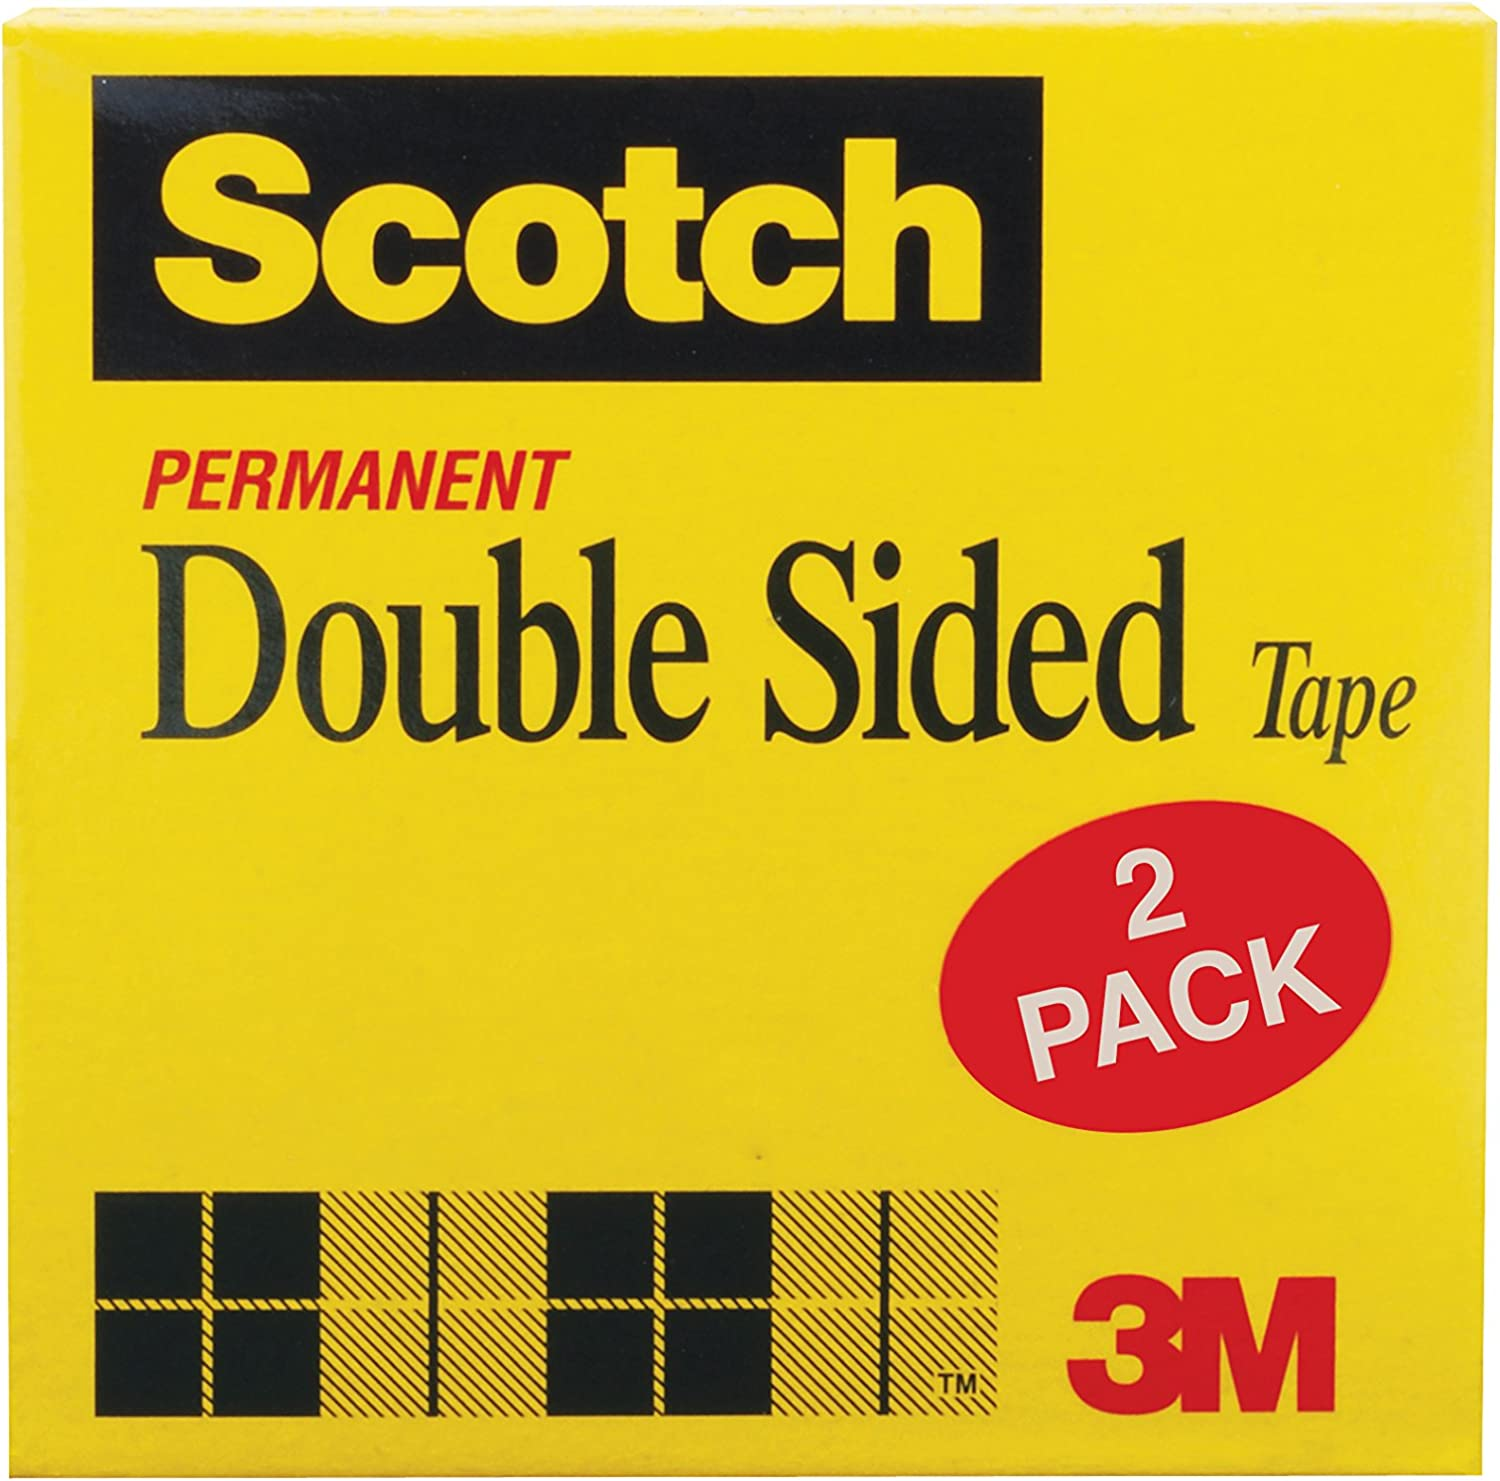 Scotch Double Sided Tape, Narrow Width, Engineered for Office and Home Use, 1/2 x 1296 Inches, 3 Inch Core, 2 Rolls (665-2P12-36)